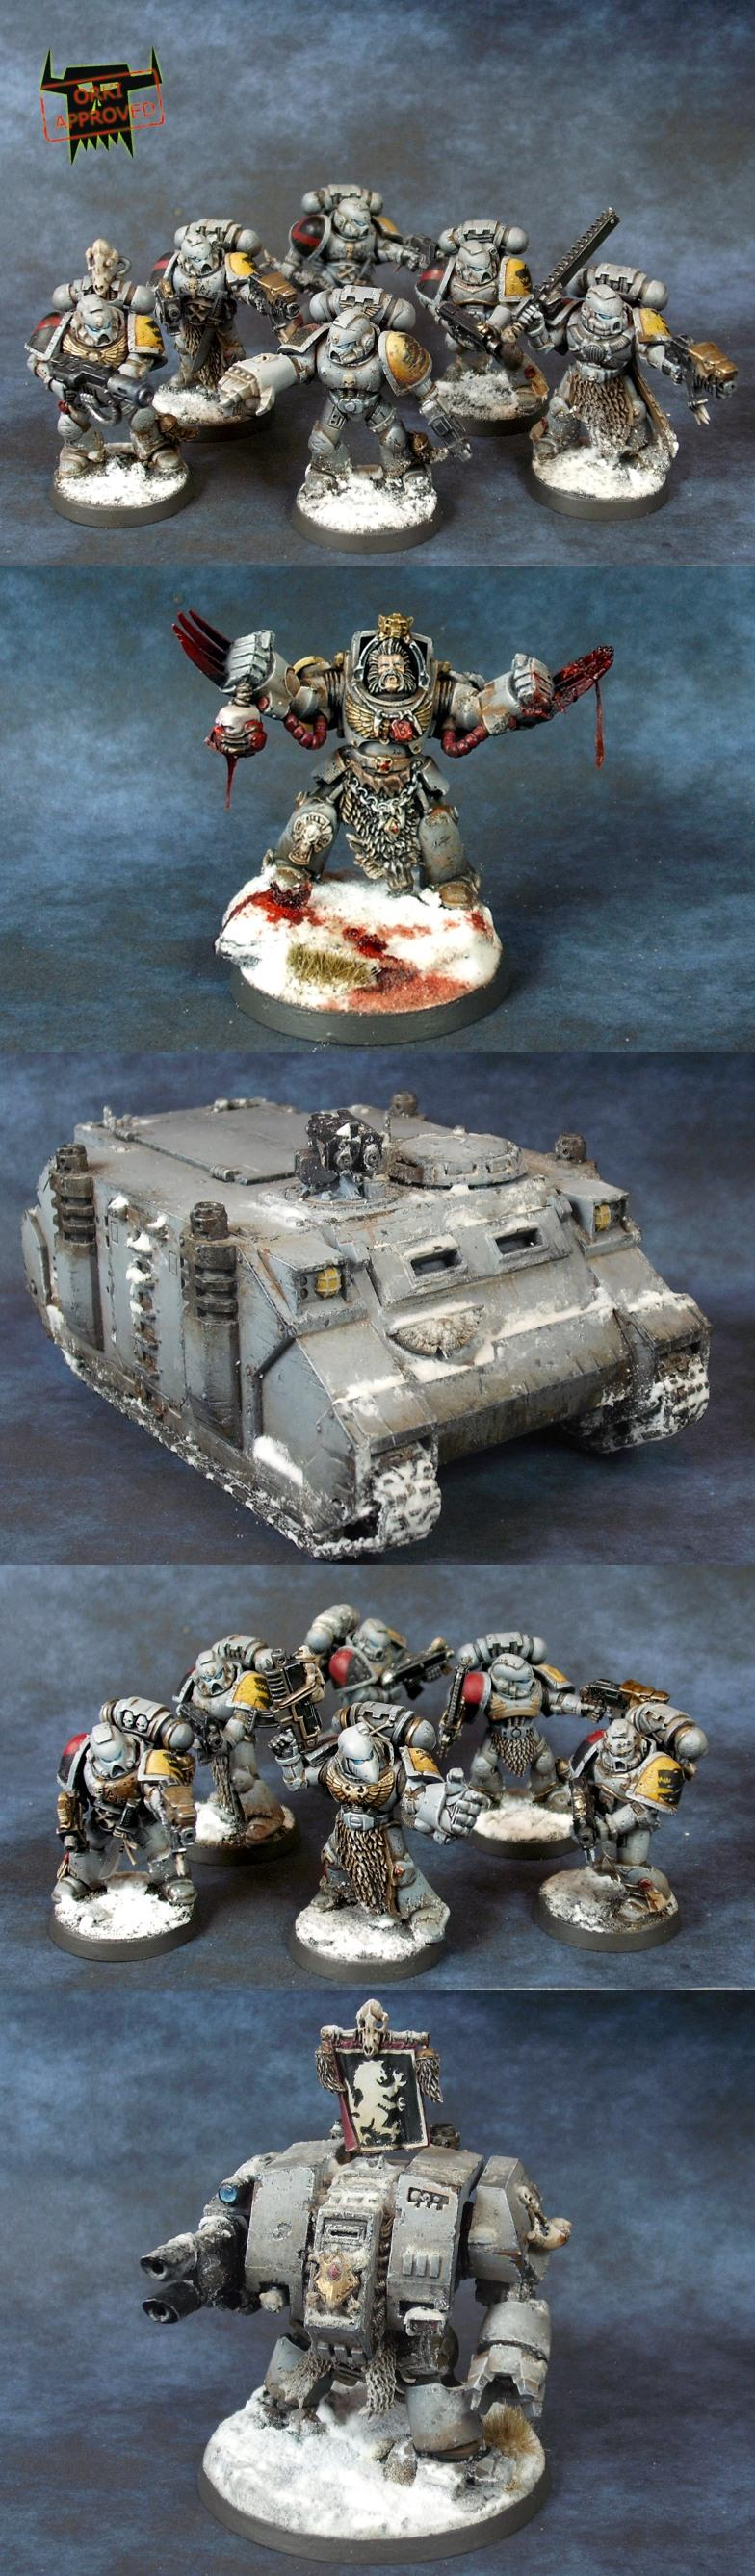 Commander In Terminator Armour, Dreadnought, Rhino, Space Marines, Space Wolves, Tactical Squad